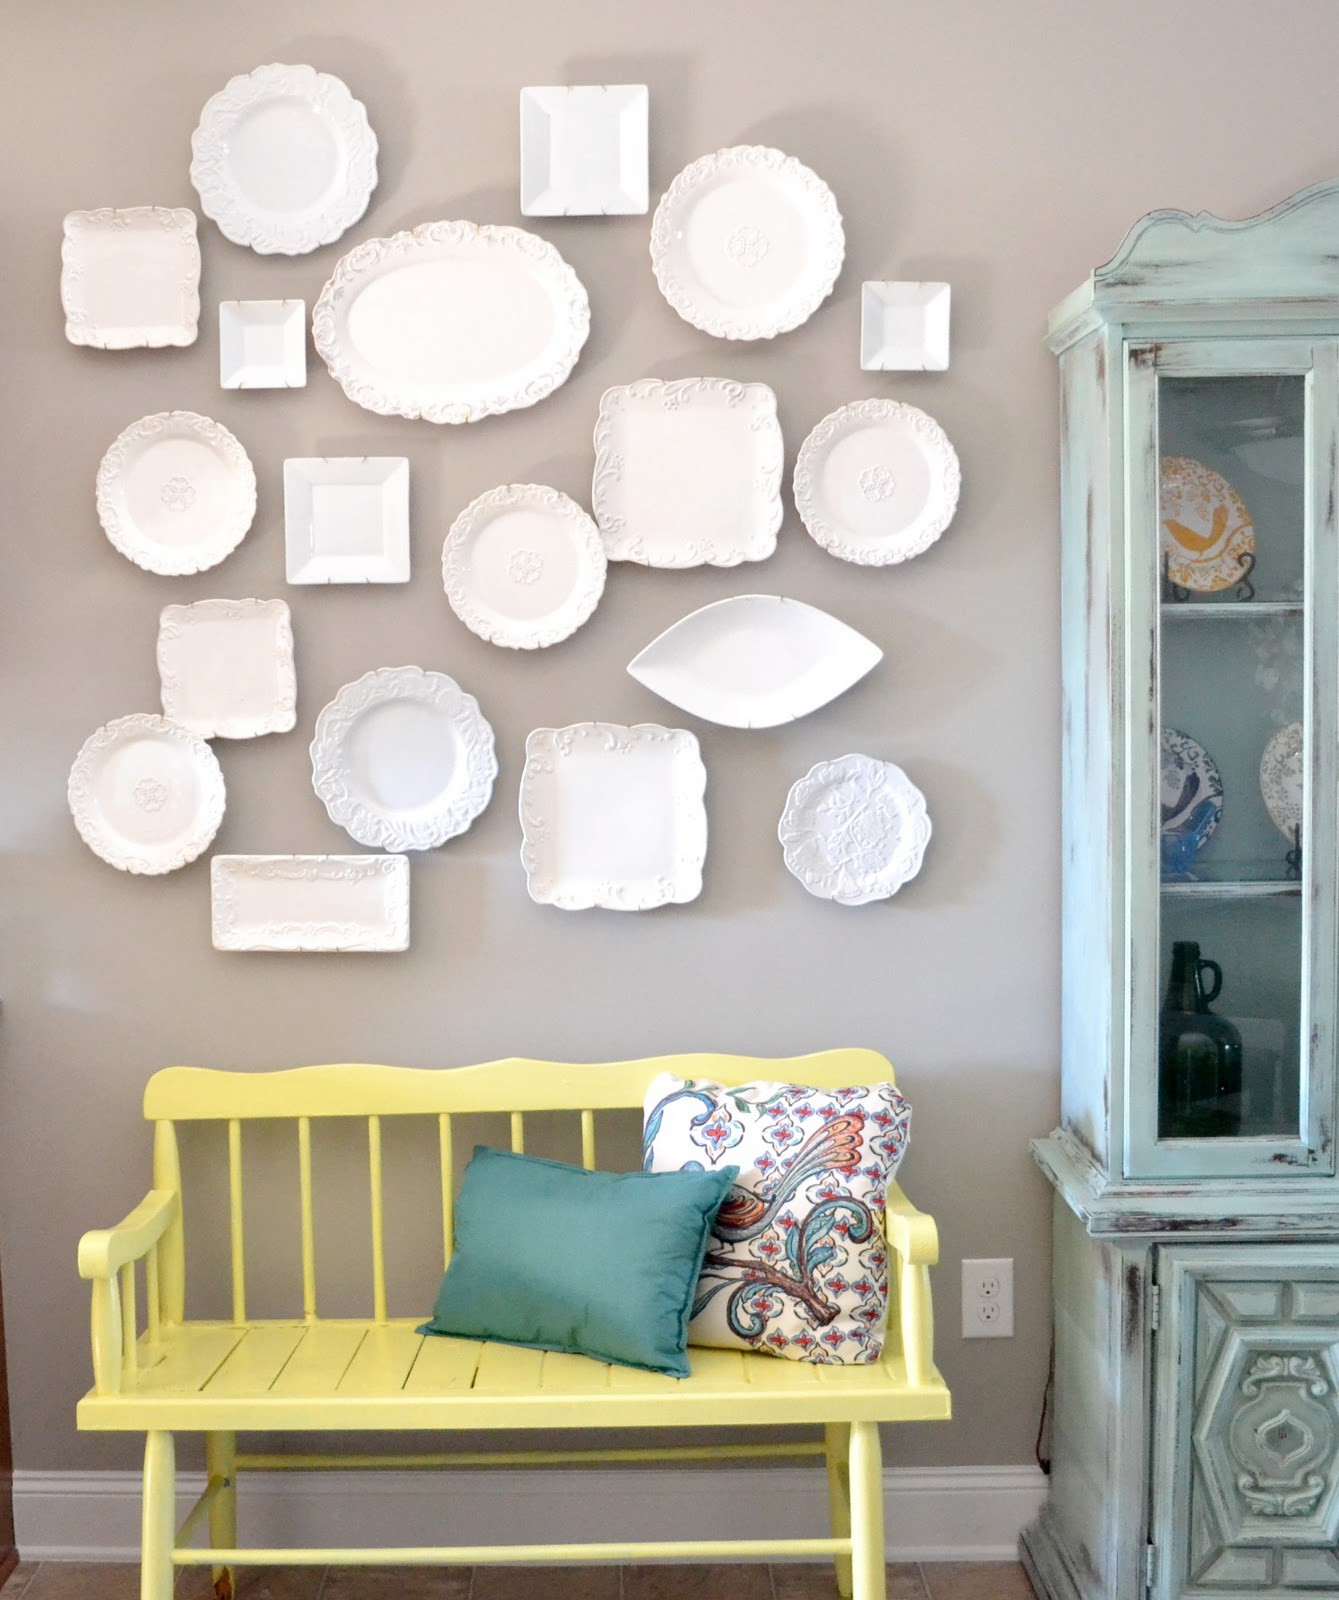 Diy plate wall inspiration tutorial for White kitchen wall decor